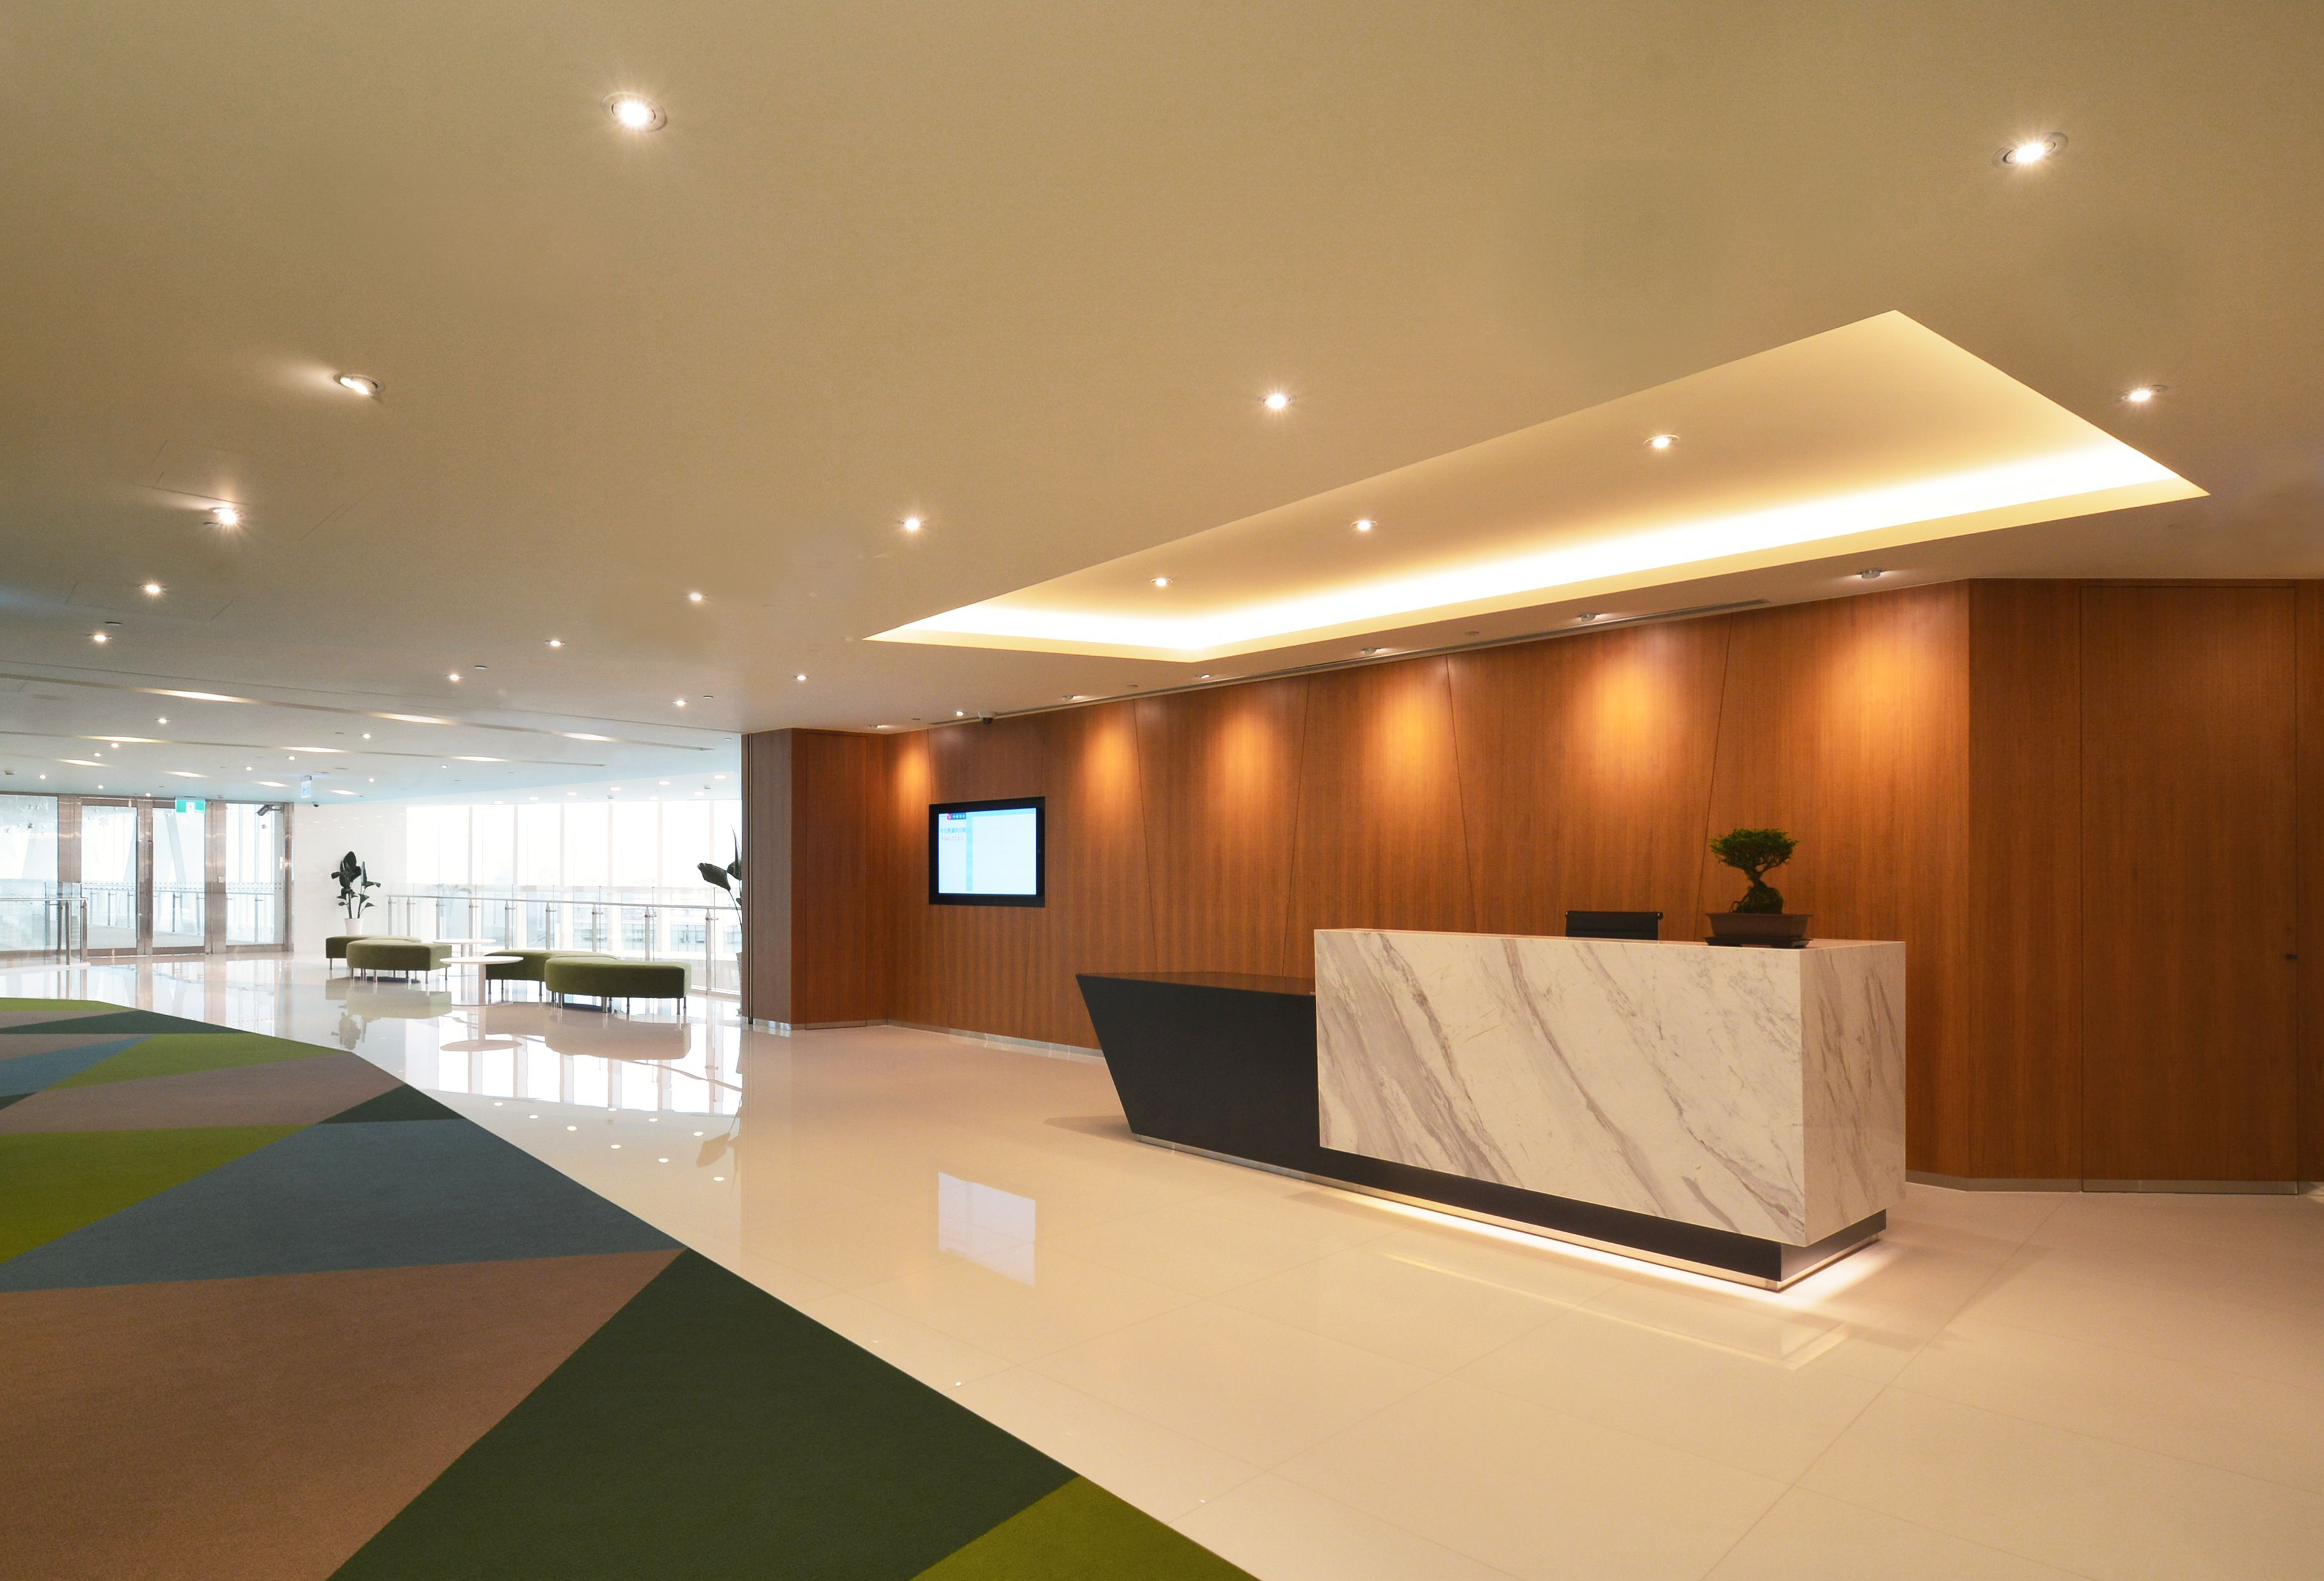 Chinatrust Bank In Taipei Taiwan Design And Build Project By The